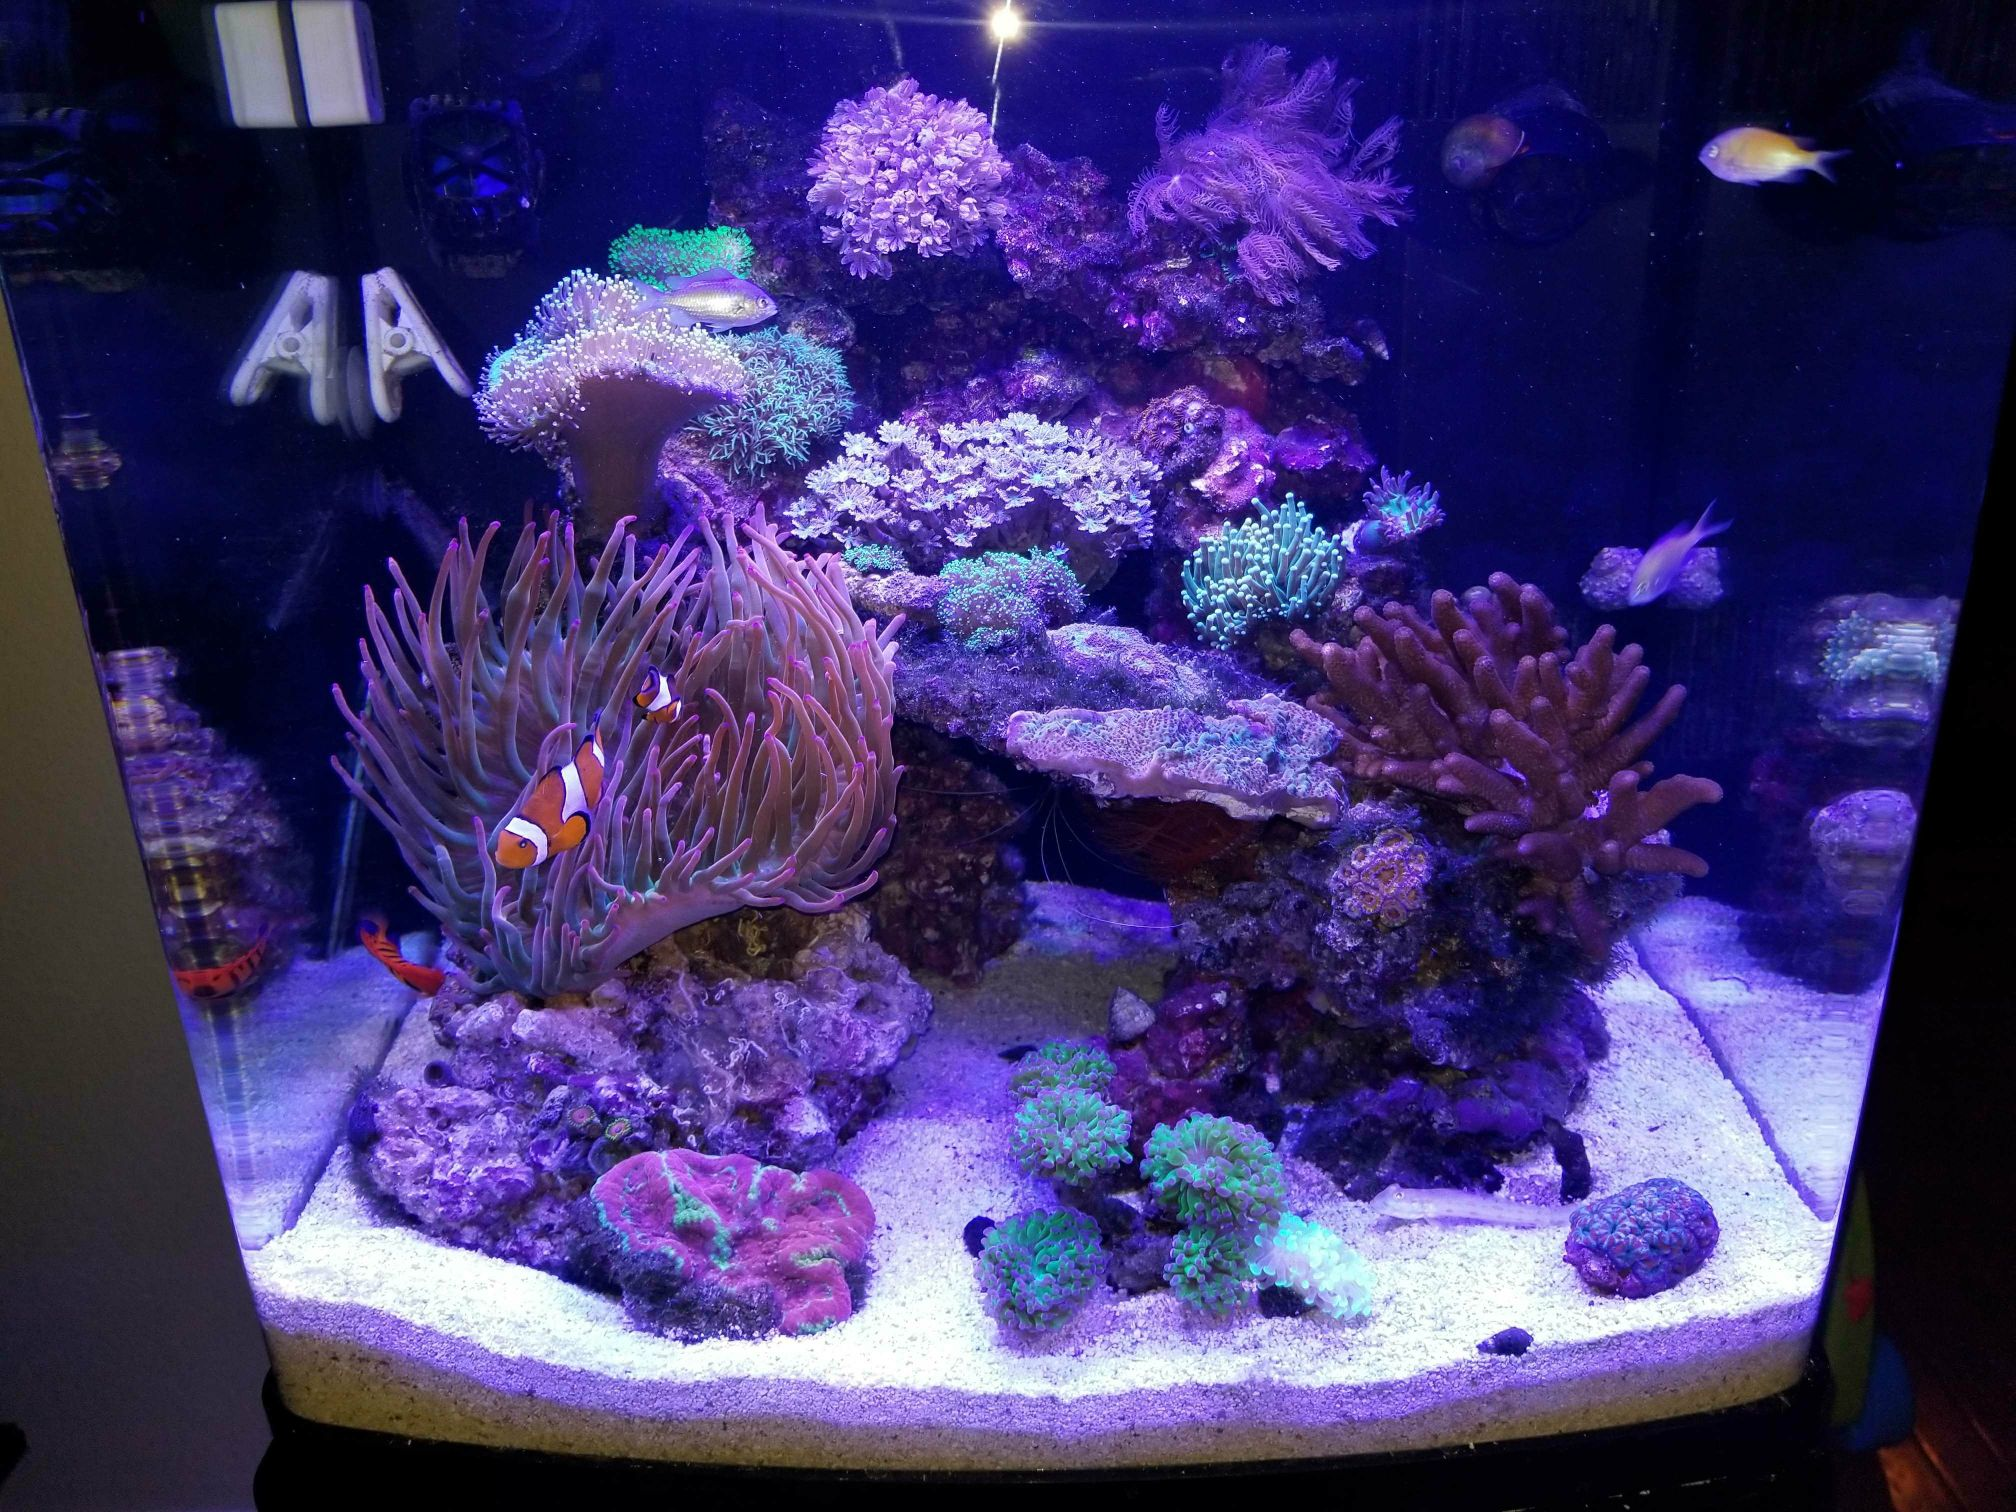 New biocube 32 Cloudy water Reef Central line munity